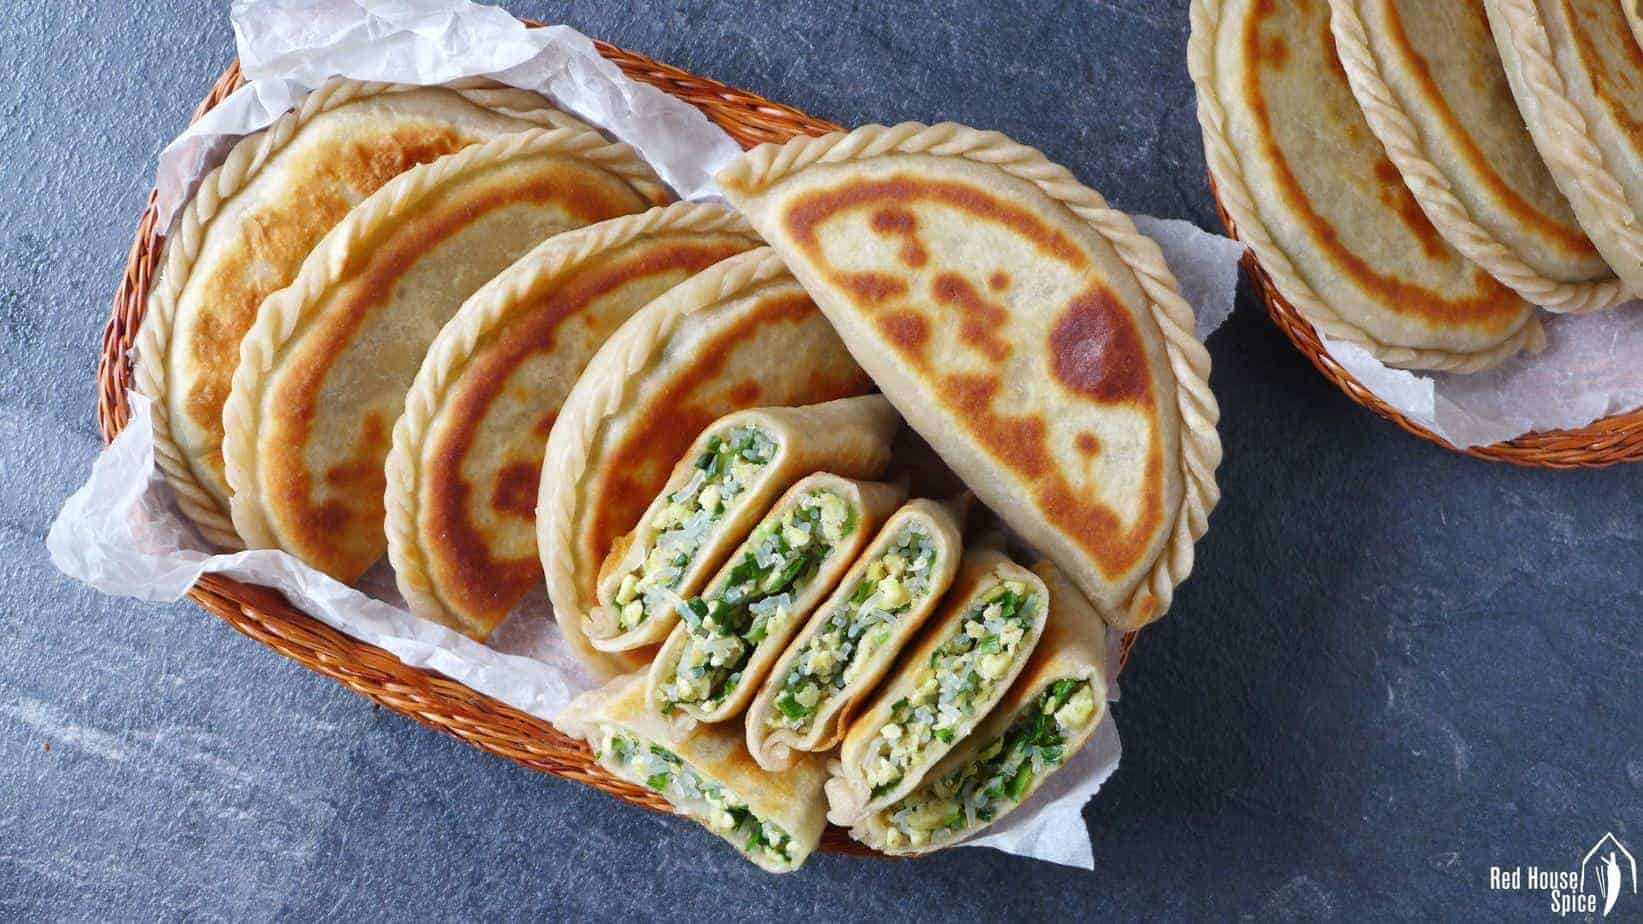 Chinese Chive Pockets 韭菜盒子 Red House Spice